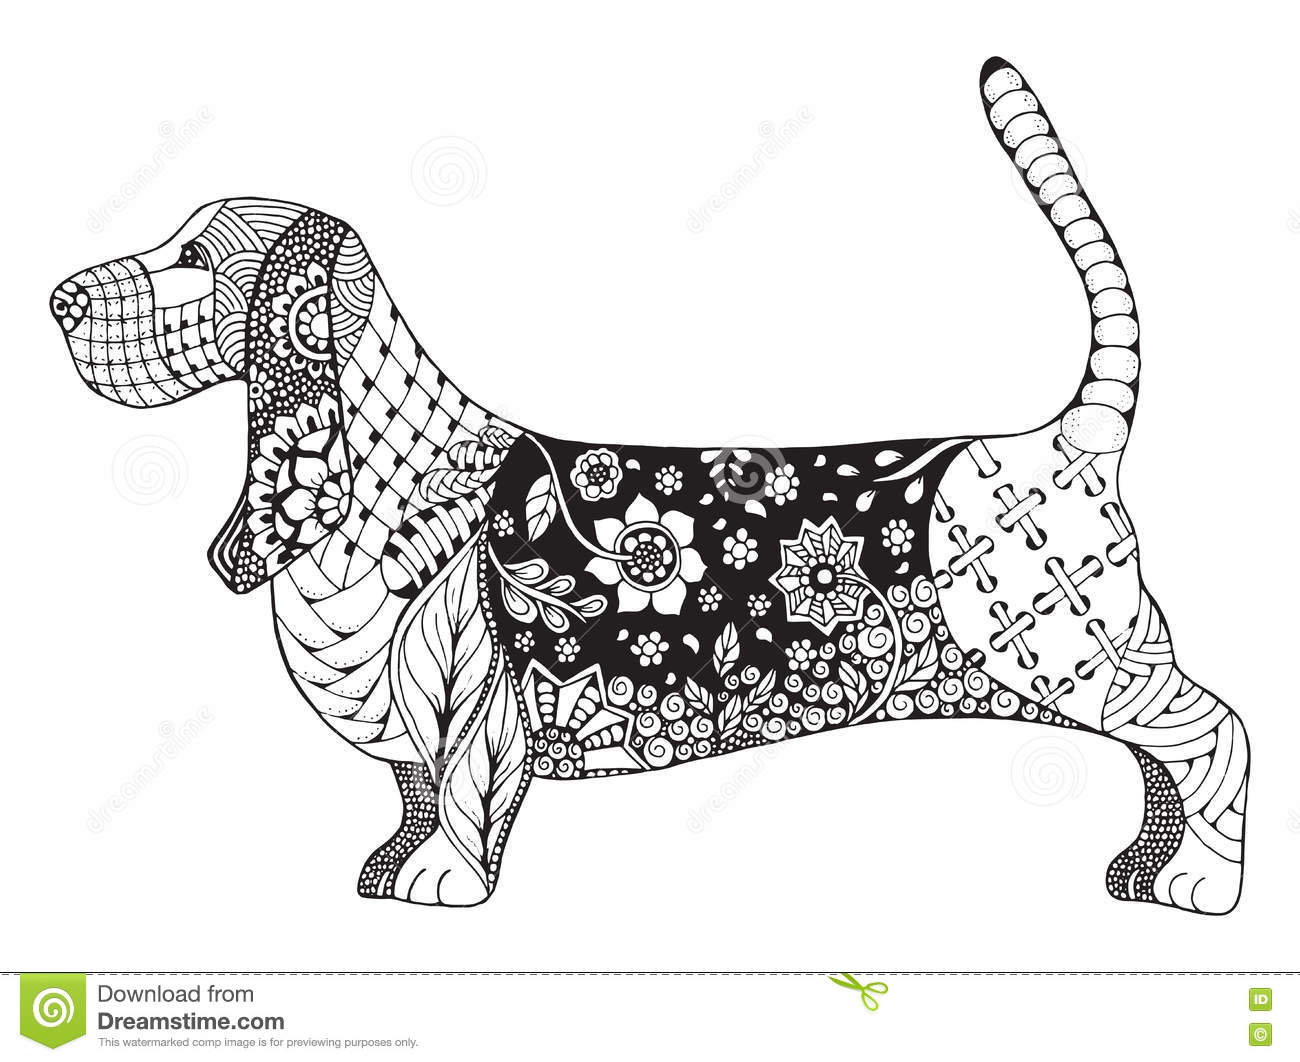 Pencil Drawing Of A Basset Hound Royalty Free Stock Image